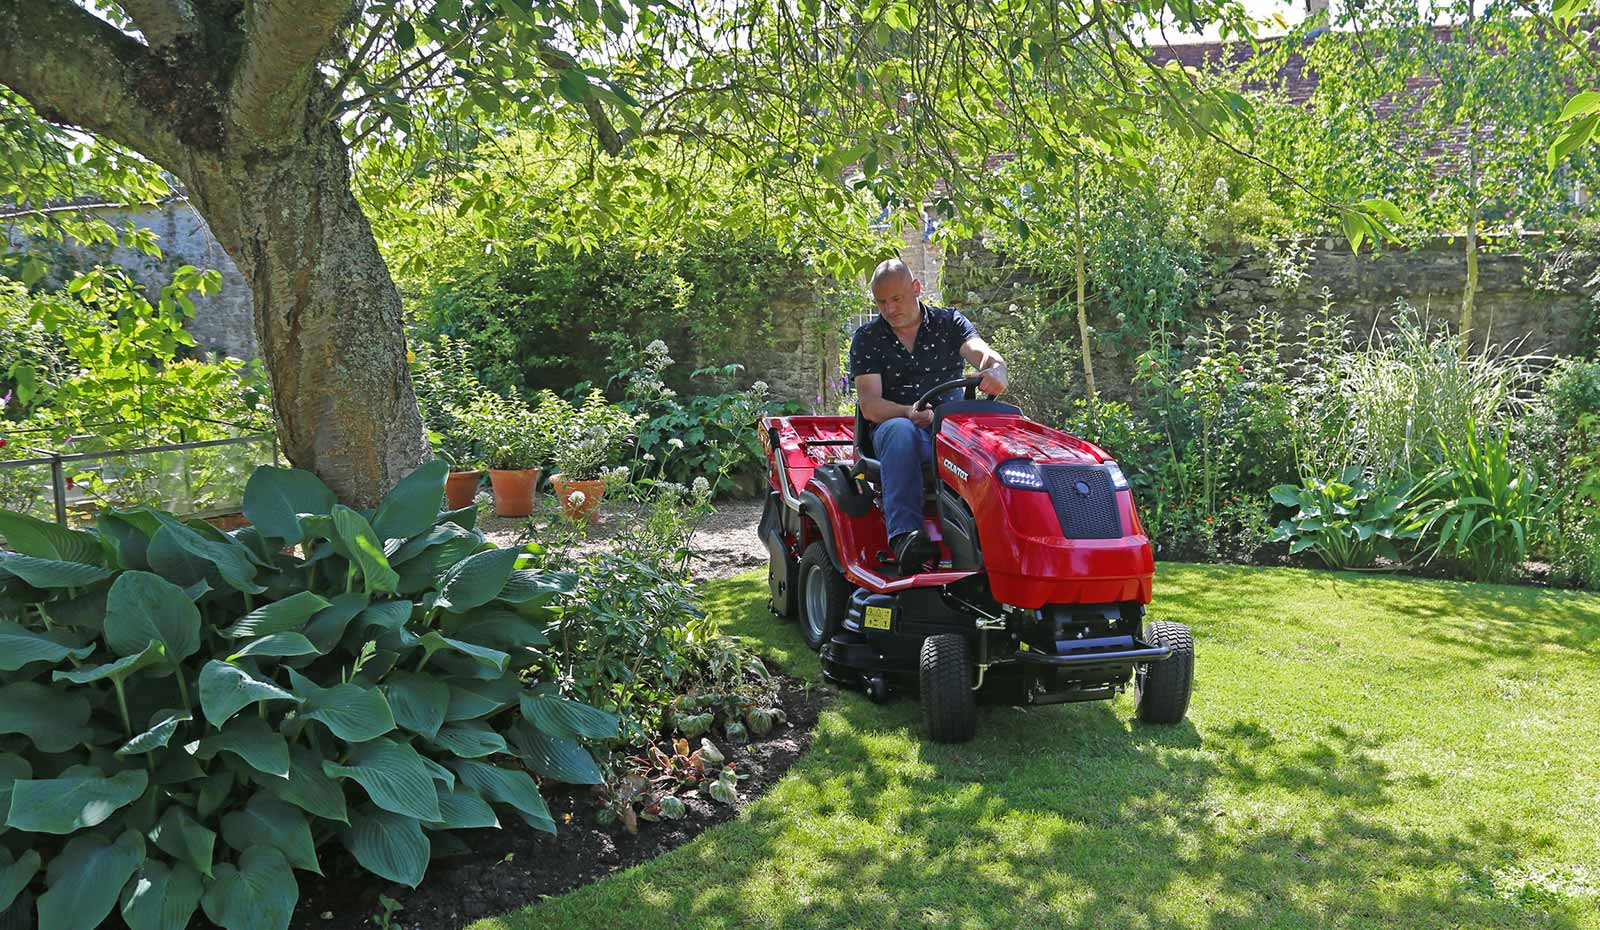 Countax C Series lawn garden tractor mower cutting grass by tree